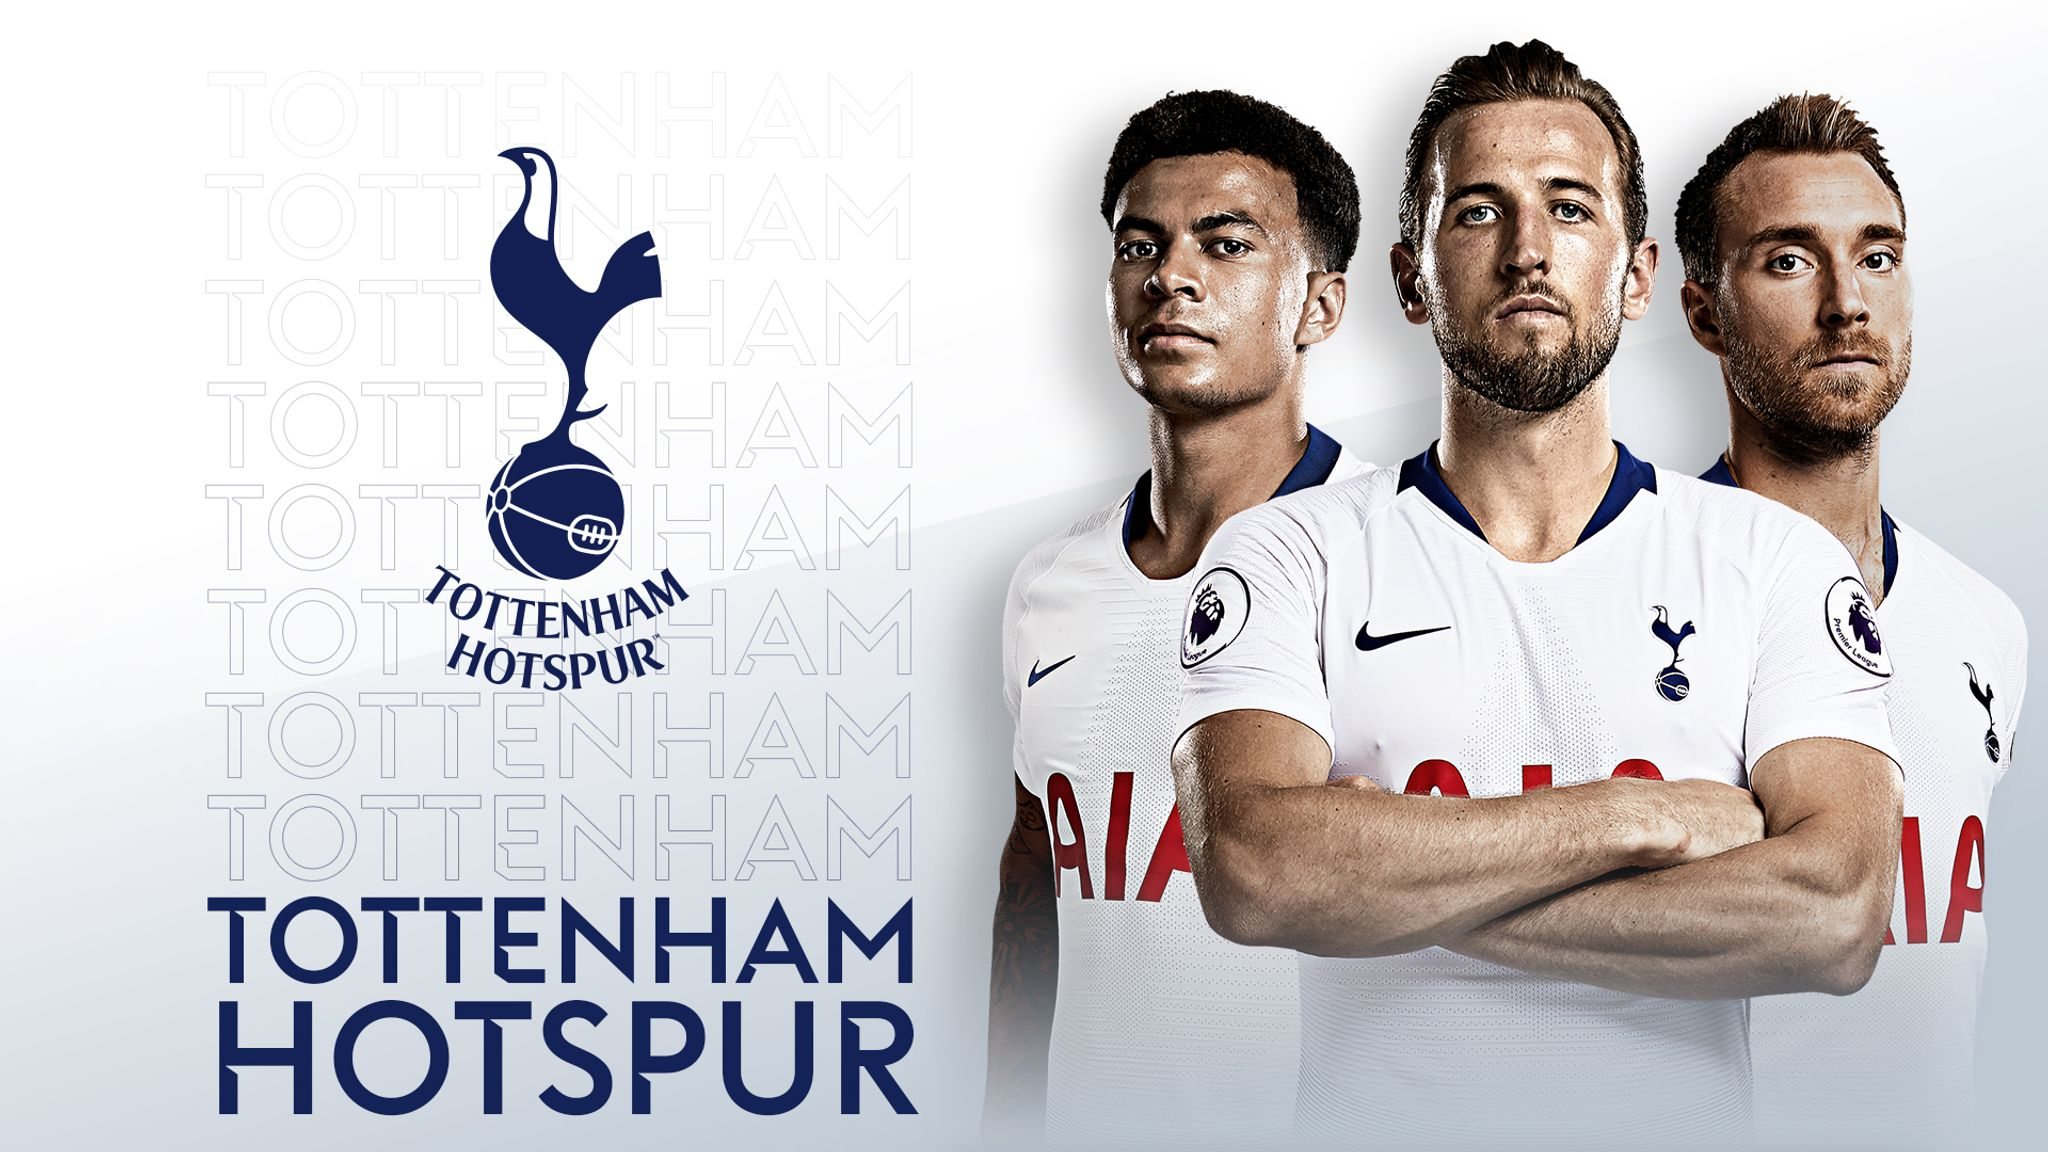 Tottenham Fixtures Premier League 2019 20 Football News Sky Sports